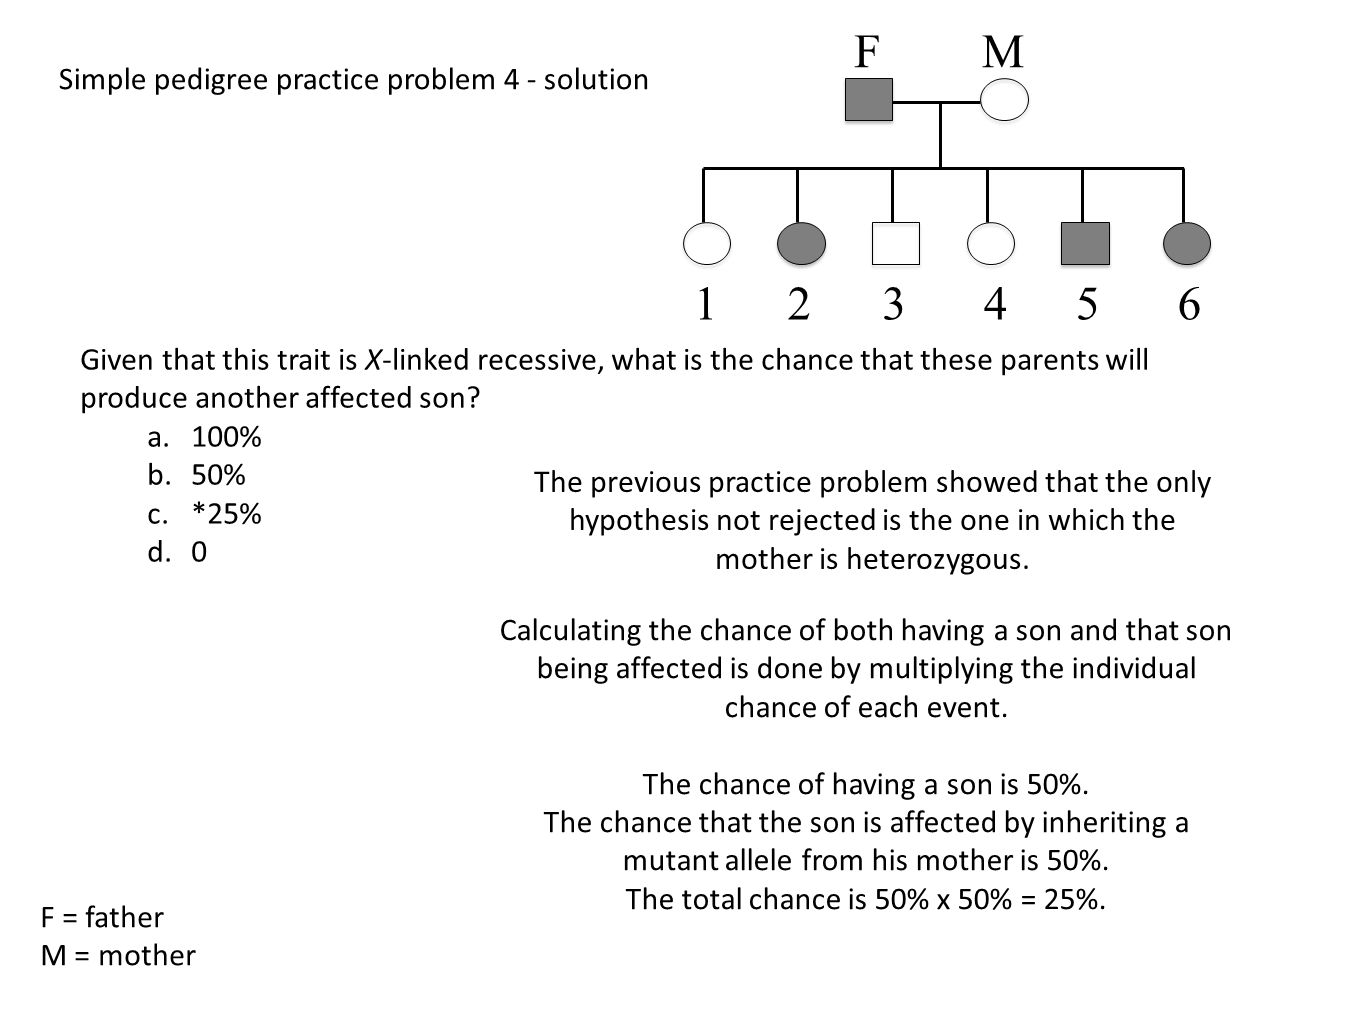 Pedigree Analysis Worksheet by srobinson6522 - Teaching Resources ...